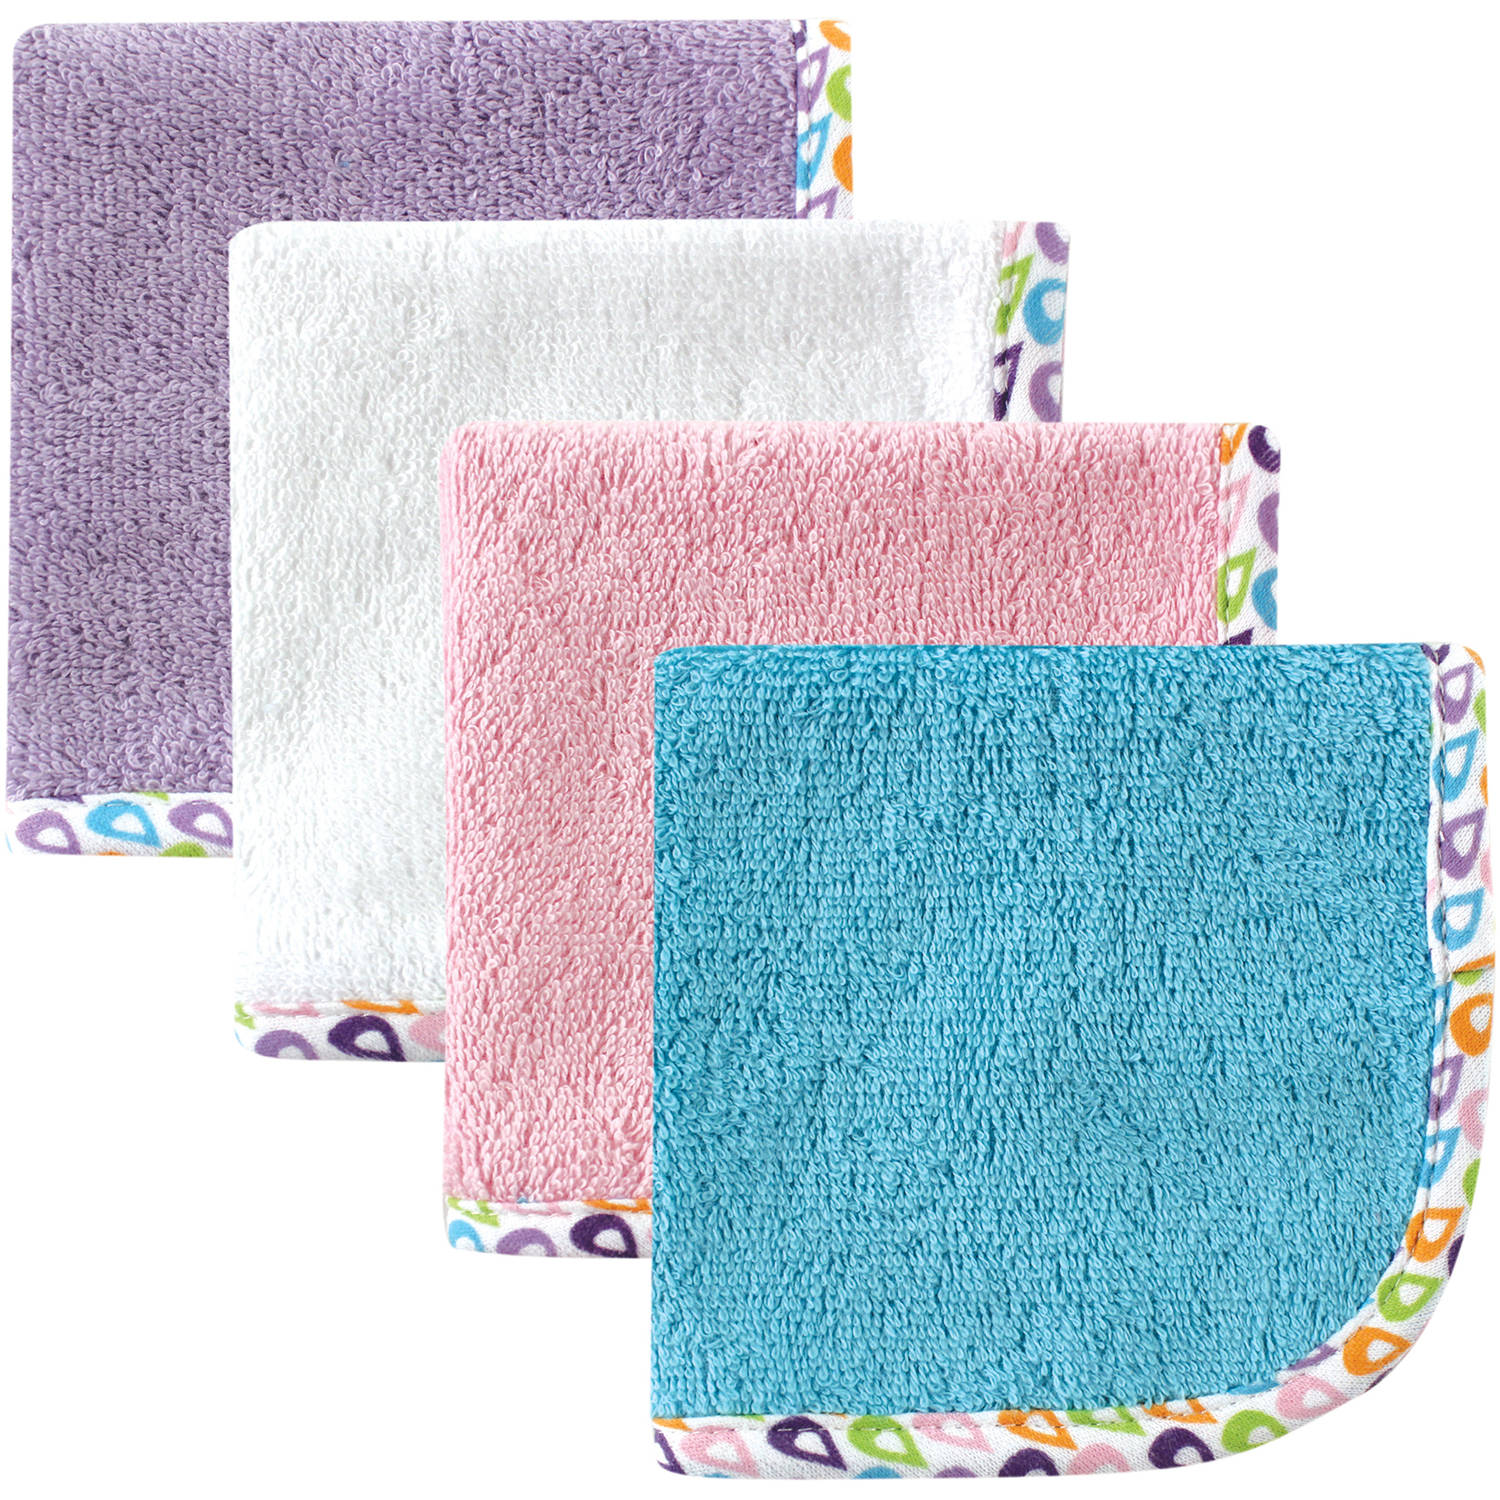 Hudson Baby Baby Woven Washcloth, Purple, 4 Pack